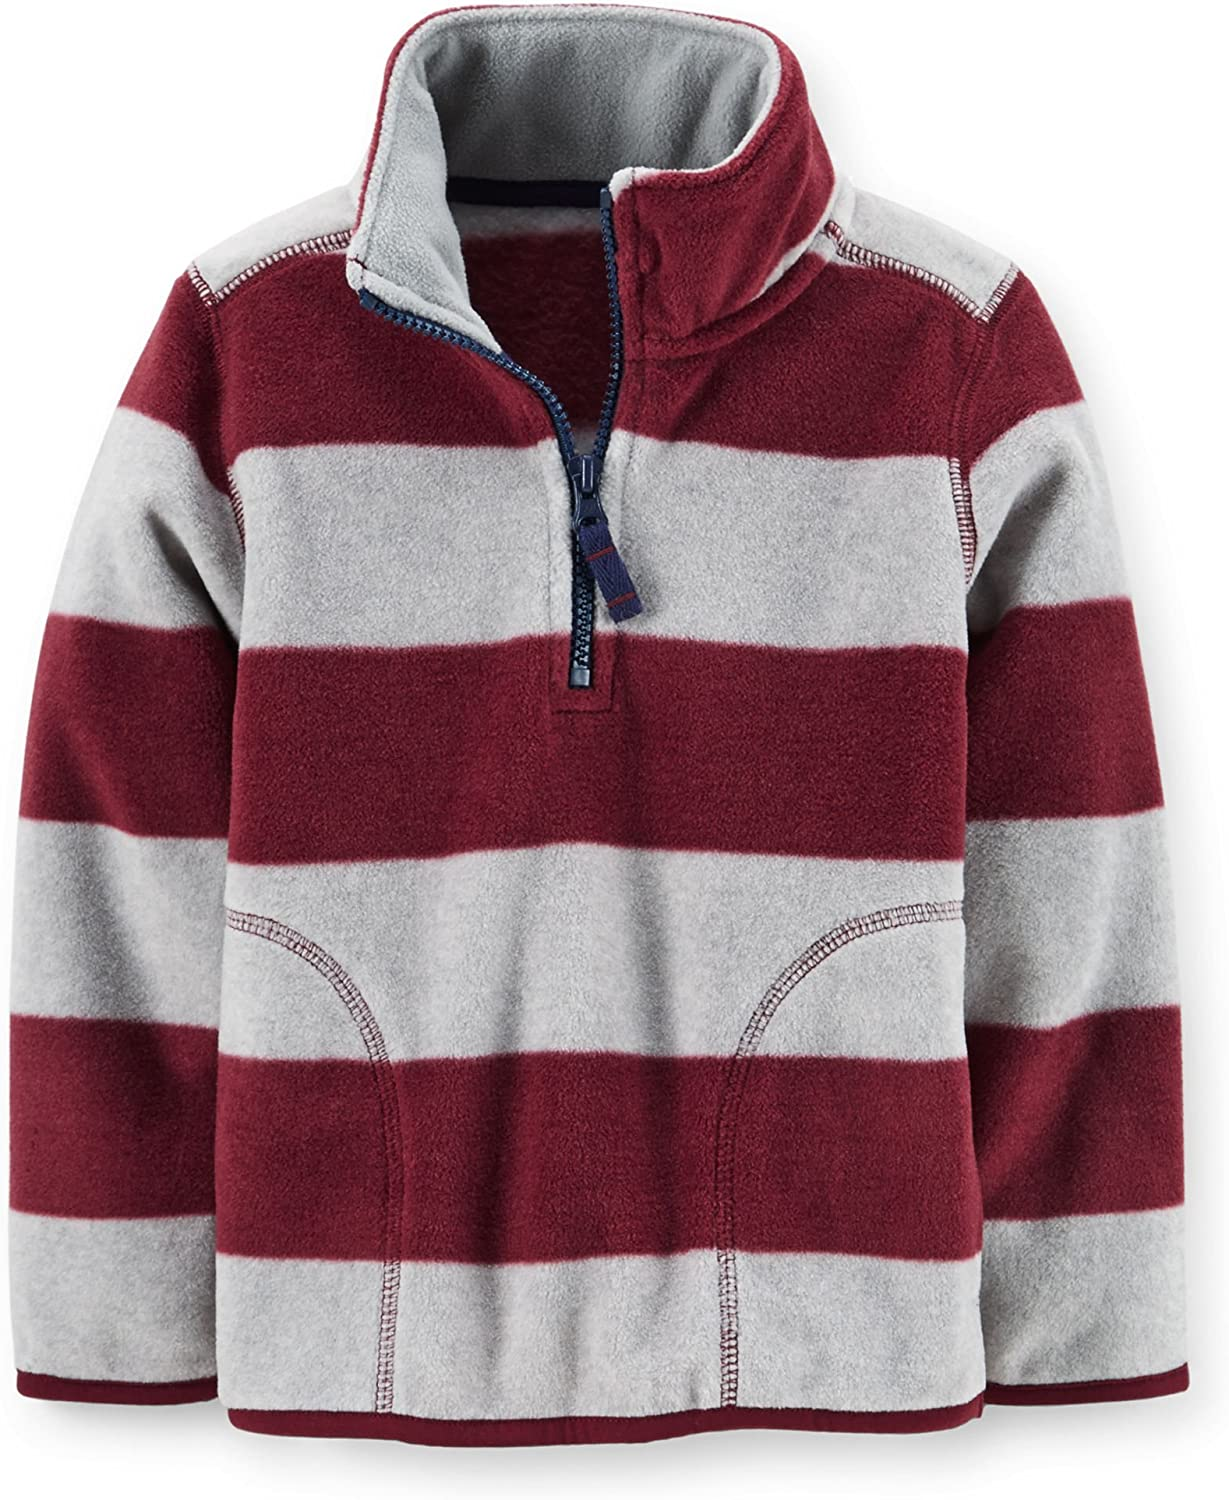 Carter's Baby Boys Microfleece Striped Pullover Jacket (3 Months, Burgundy)